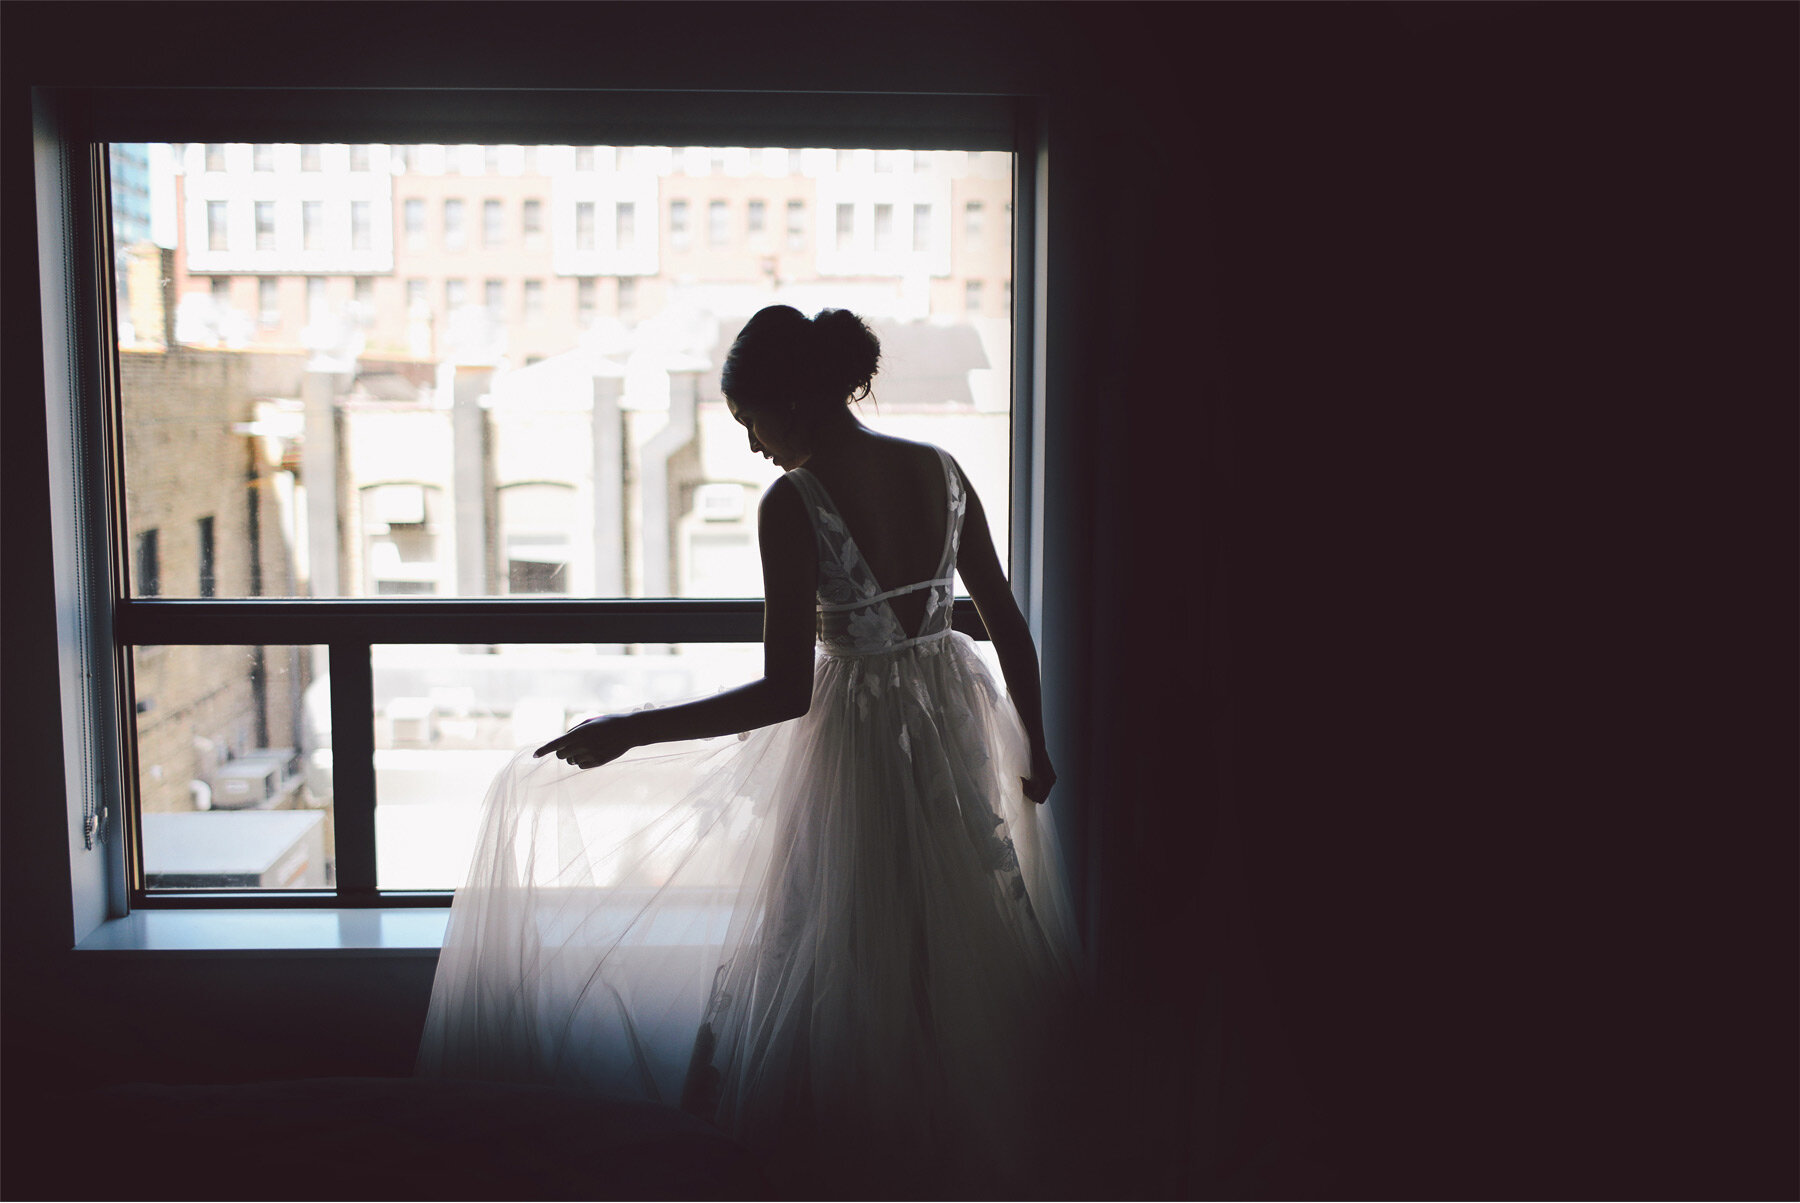 01-Wedding-by-Andrew-Vick-Photography-Chicago-Illinois-Bride-Dress-Ashley-and-Nicholas.jpg